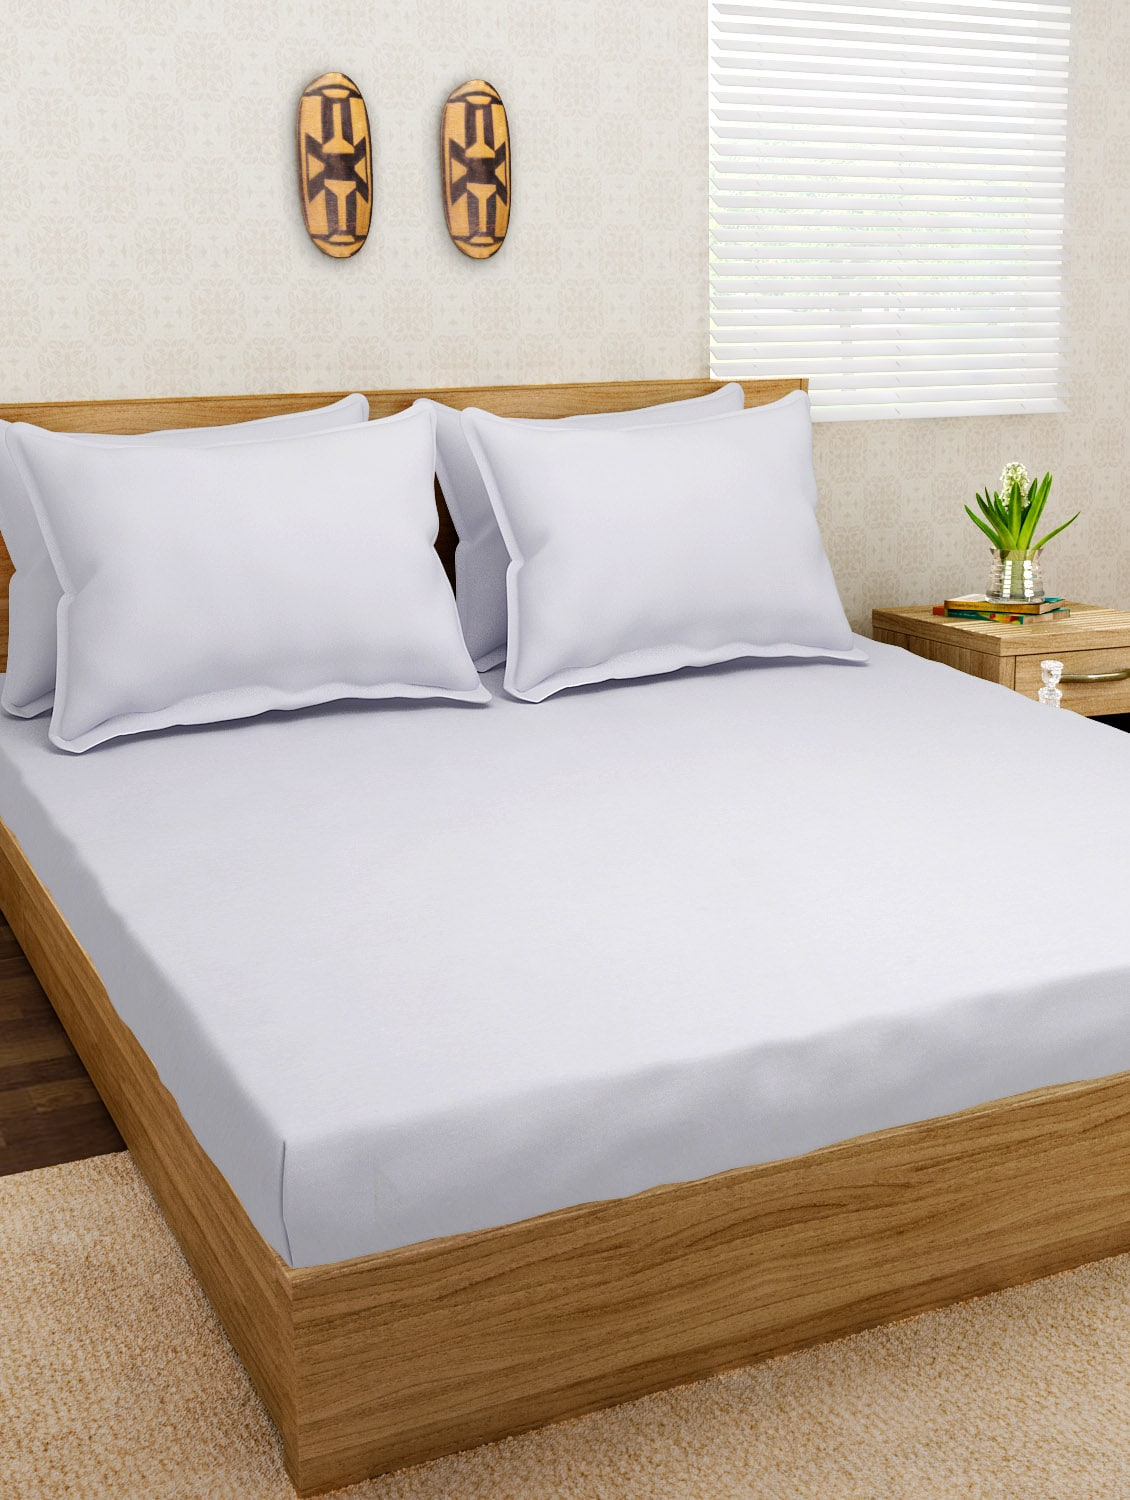 Buy Jersey Dreams White Knit Fitted Bedsheet Set By Jersey Dreams   Online  Shopping For Bed Sheet Sets In India | 10148566